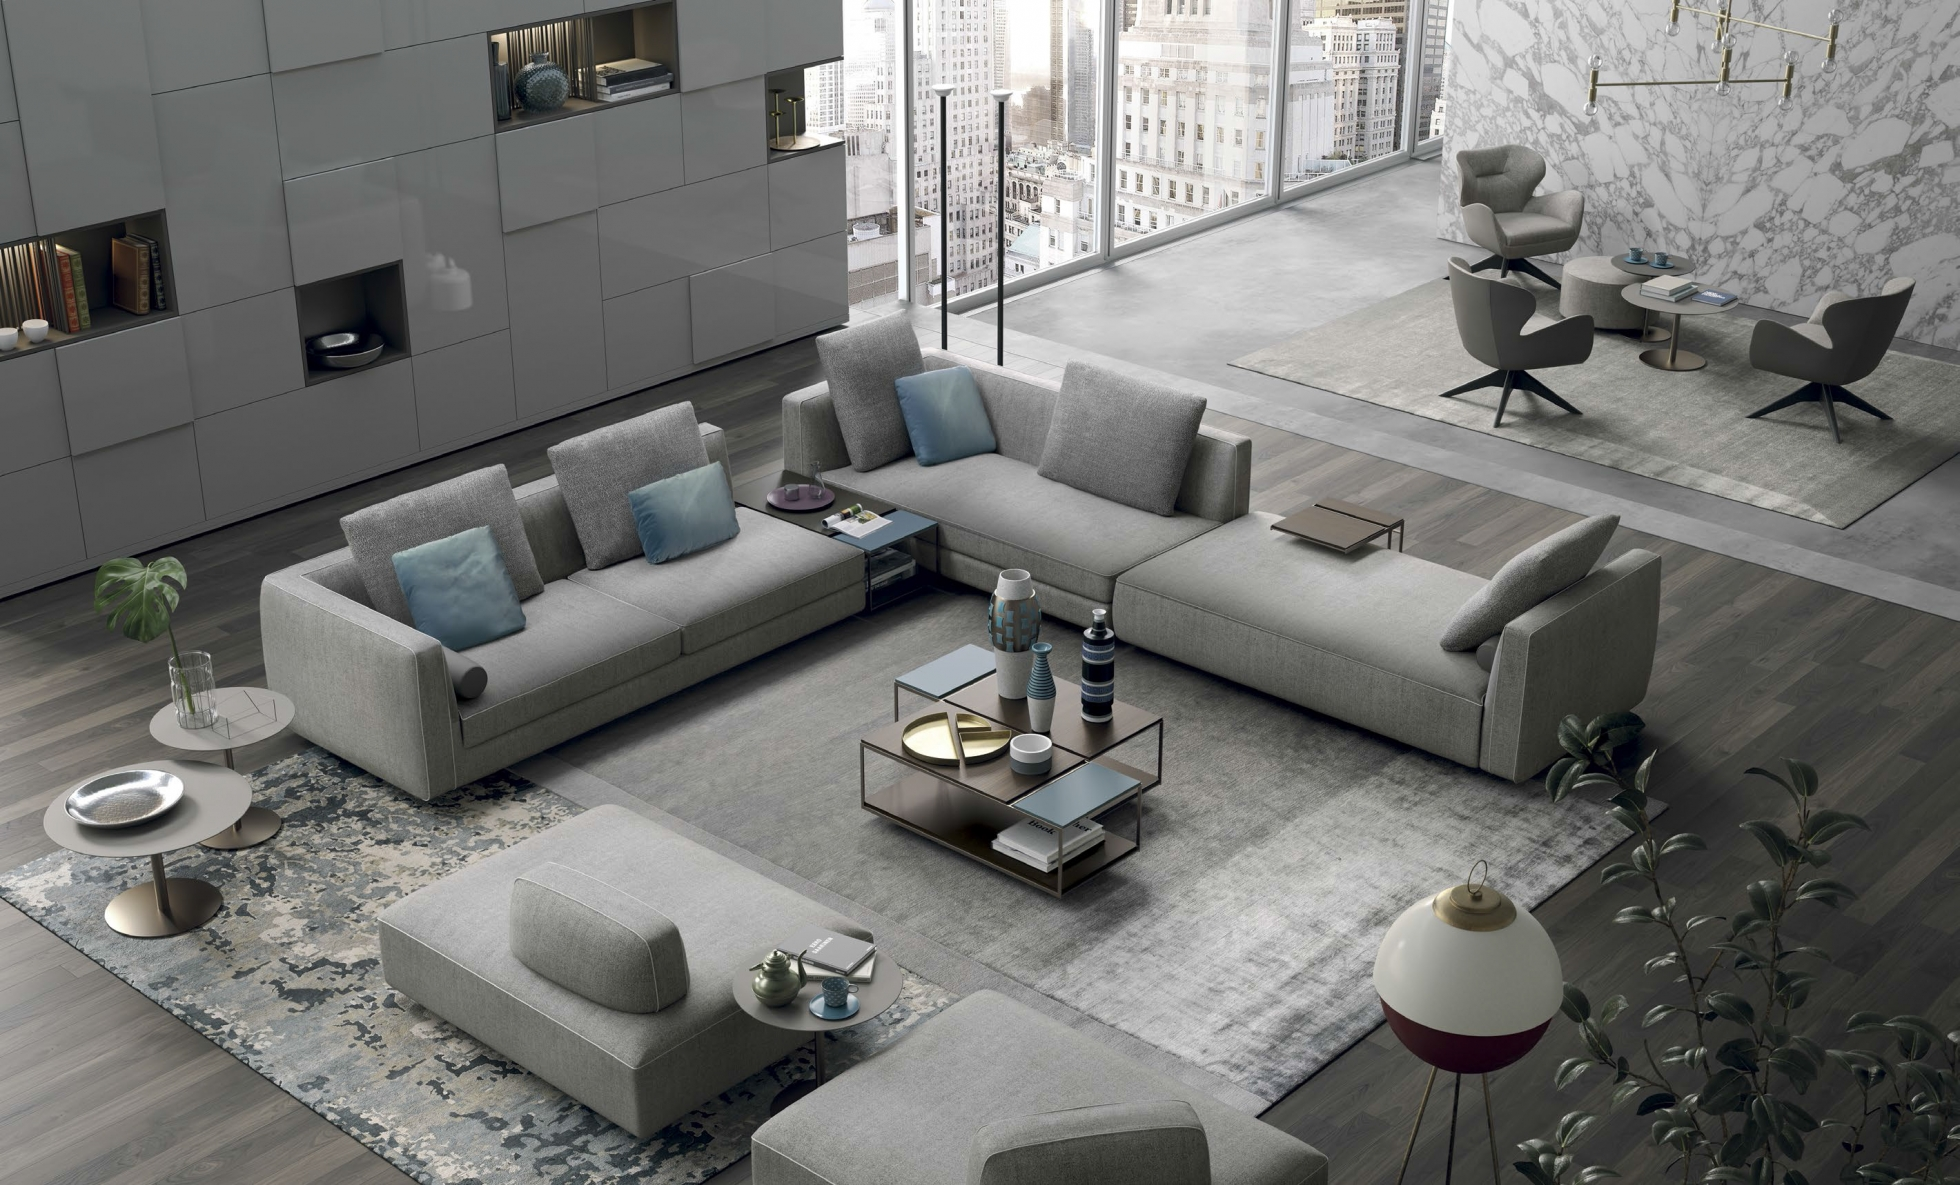 Ordinaire Glam Modular Sectional   Highly Sophisticated Solution For Modern Interiors